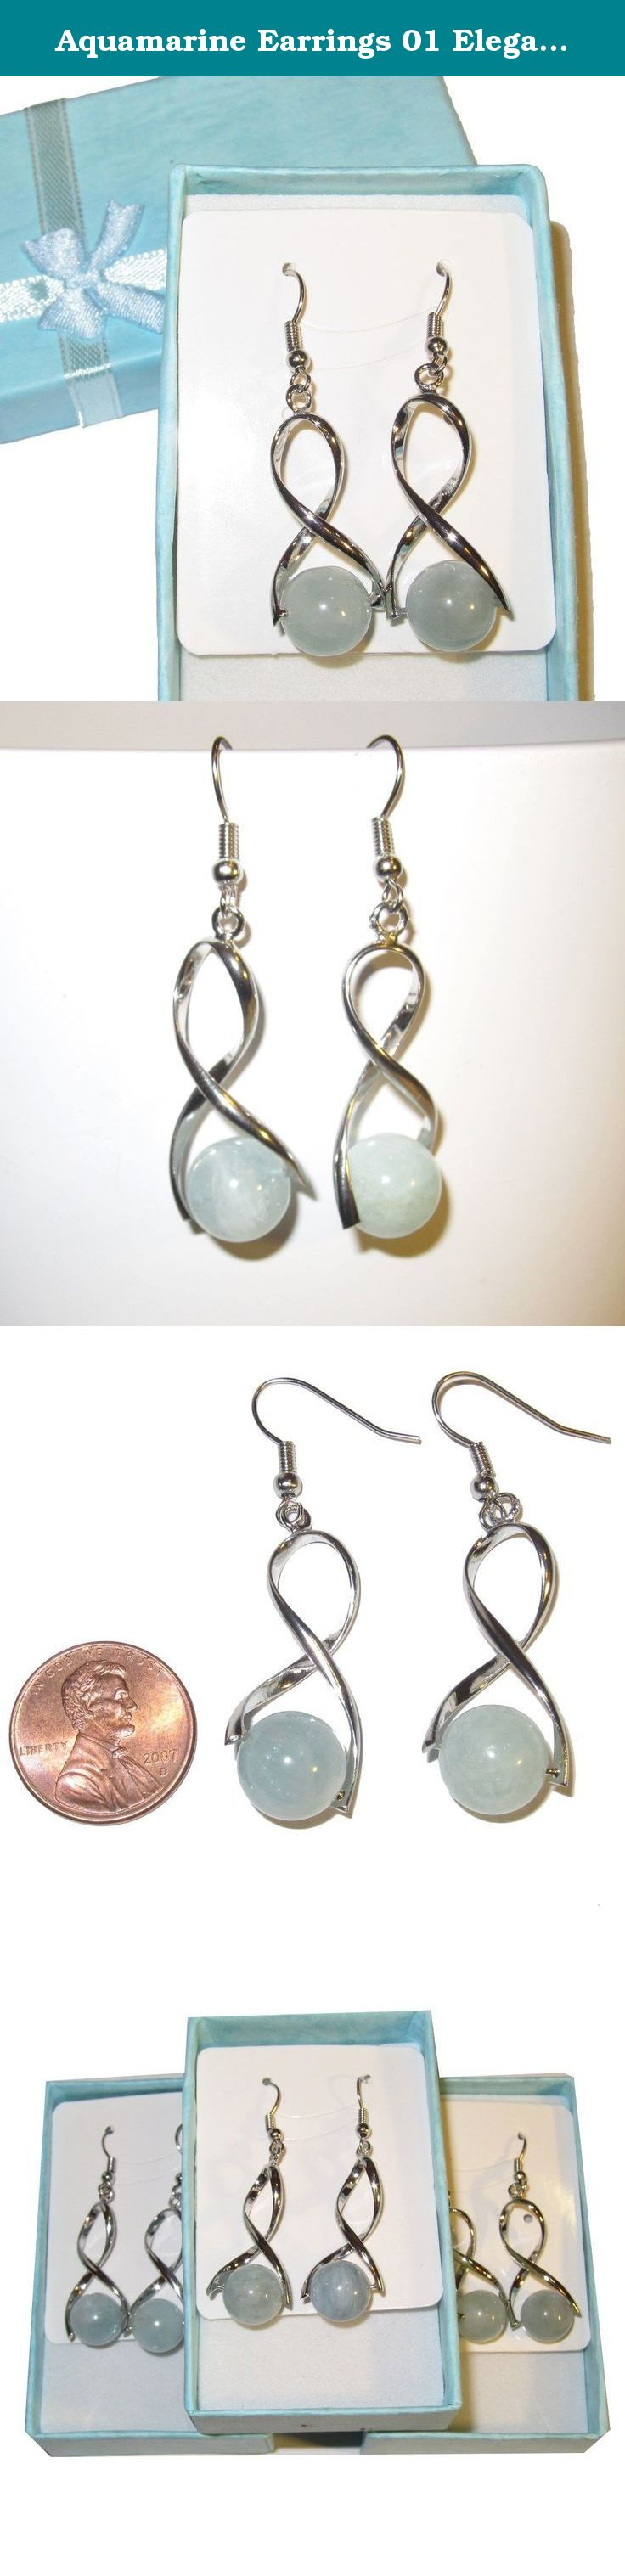 """Aquamarine Earrings 01 Elegant Blue Natural 10mm Gemstone Healing Crystals Twisted Silver Artisan 1.8"""" Dangle (Gift Box). Crystal Jewelry This beautiful pair of crystal earrings is made from genuine aquamarine gemstones. The stones are round with aqua blue tones, each varying slightly from the next, and natural patterns. They are suspended upon elegant and fun twisted silver metal design and hooks. The earrings comes in a gift-ready Satin Crystals box. Receive one pair per order, from a..."""